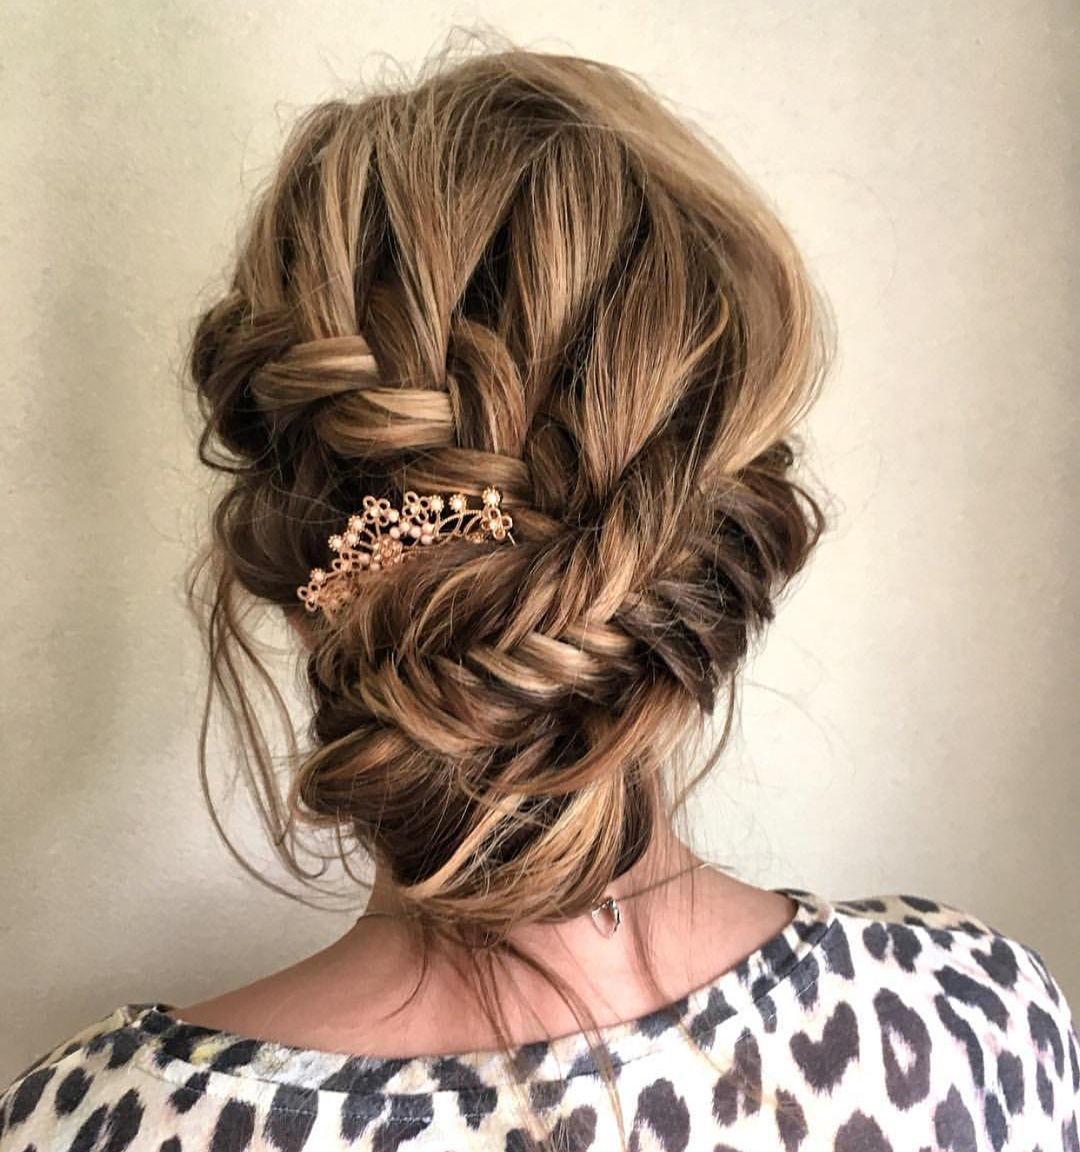 updos for medium length hair from top salon stylists prom